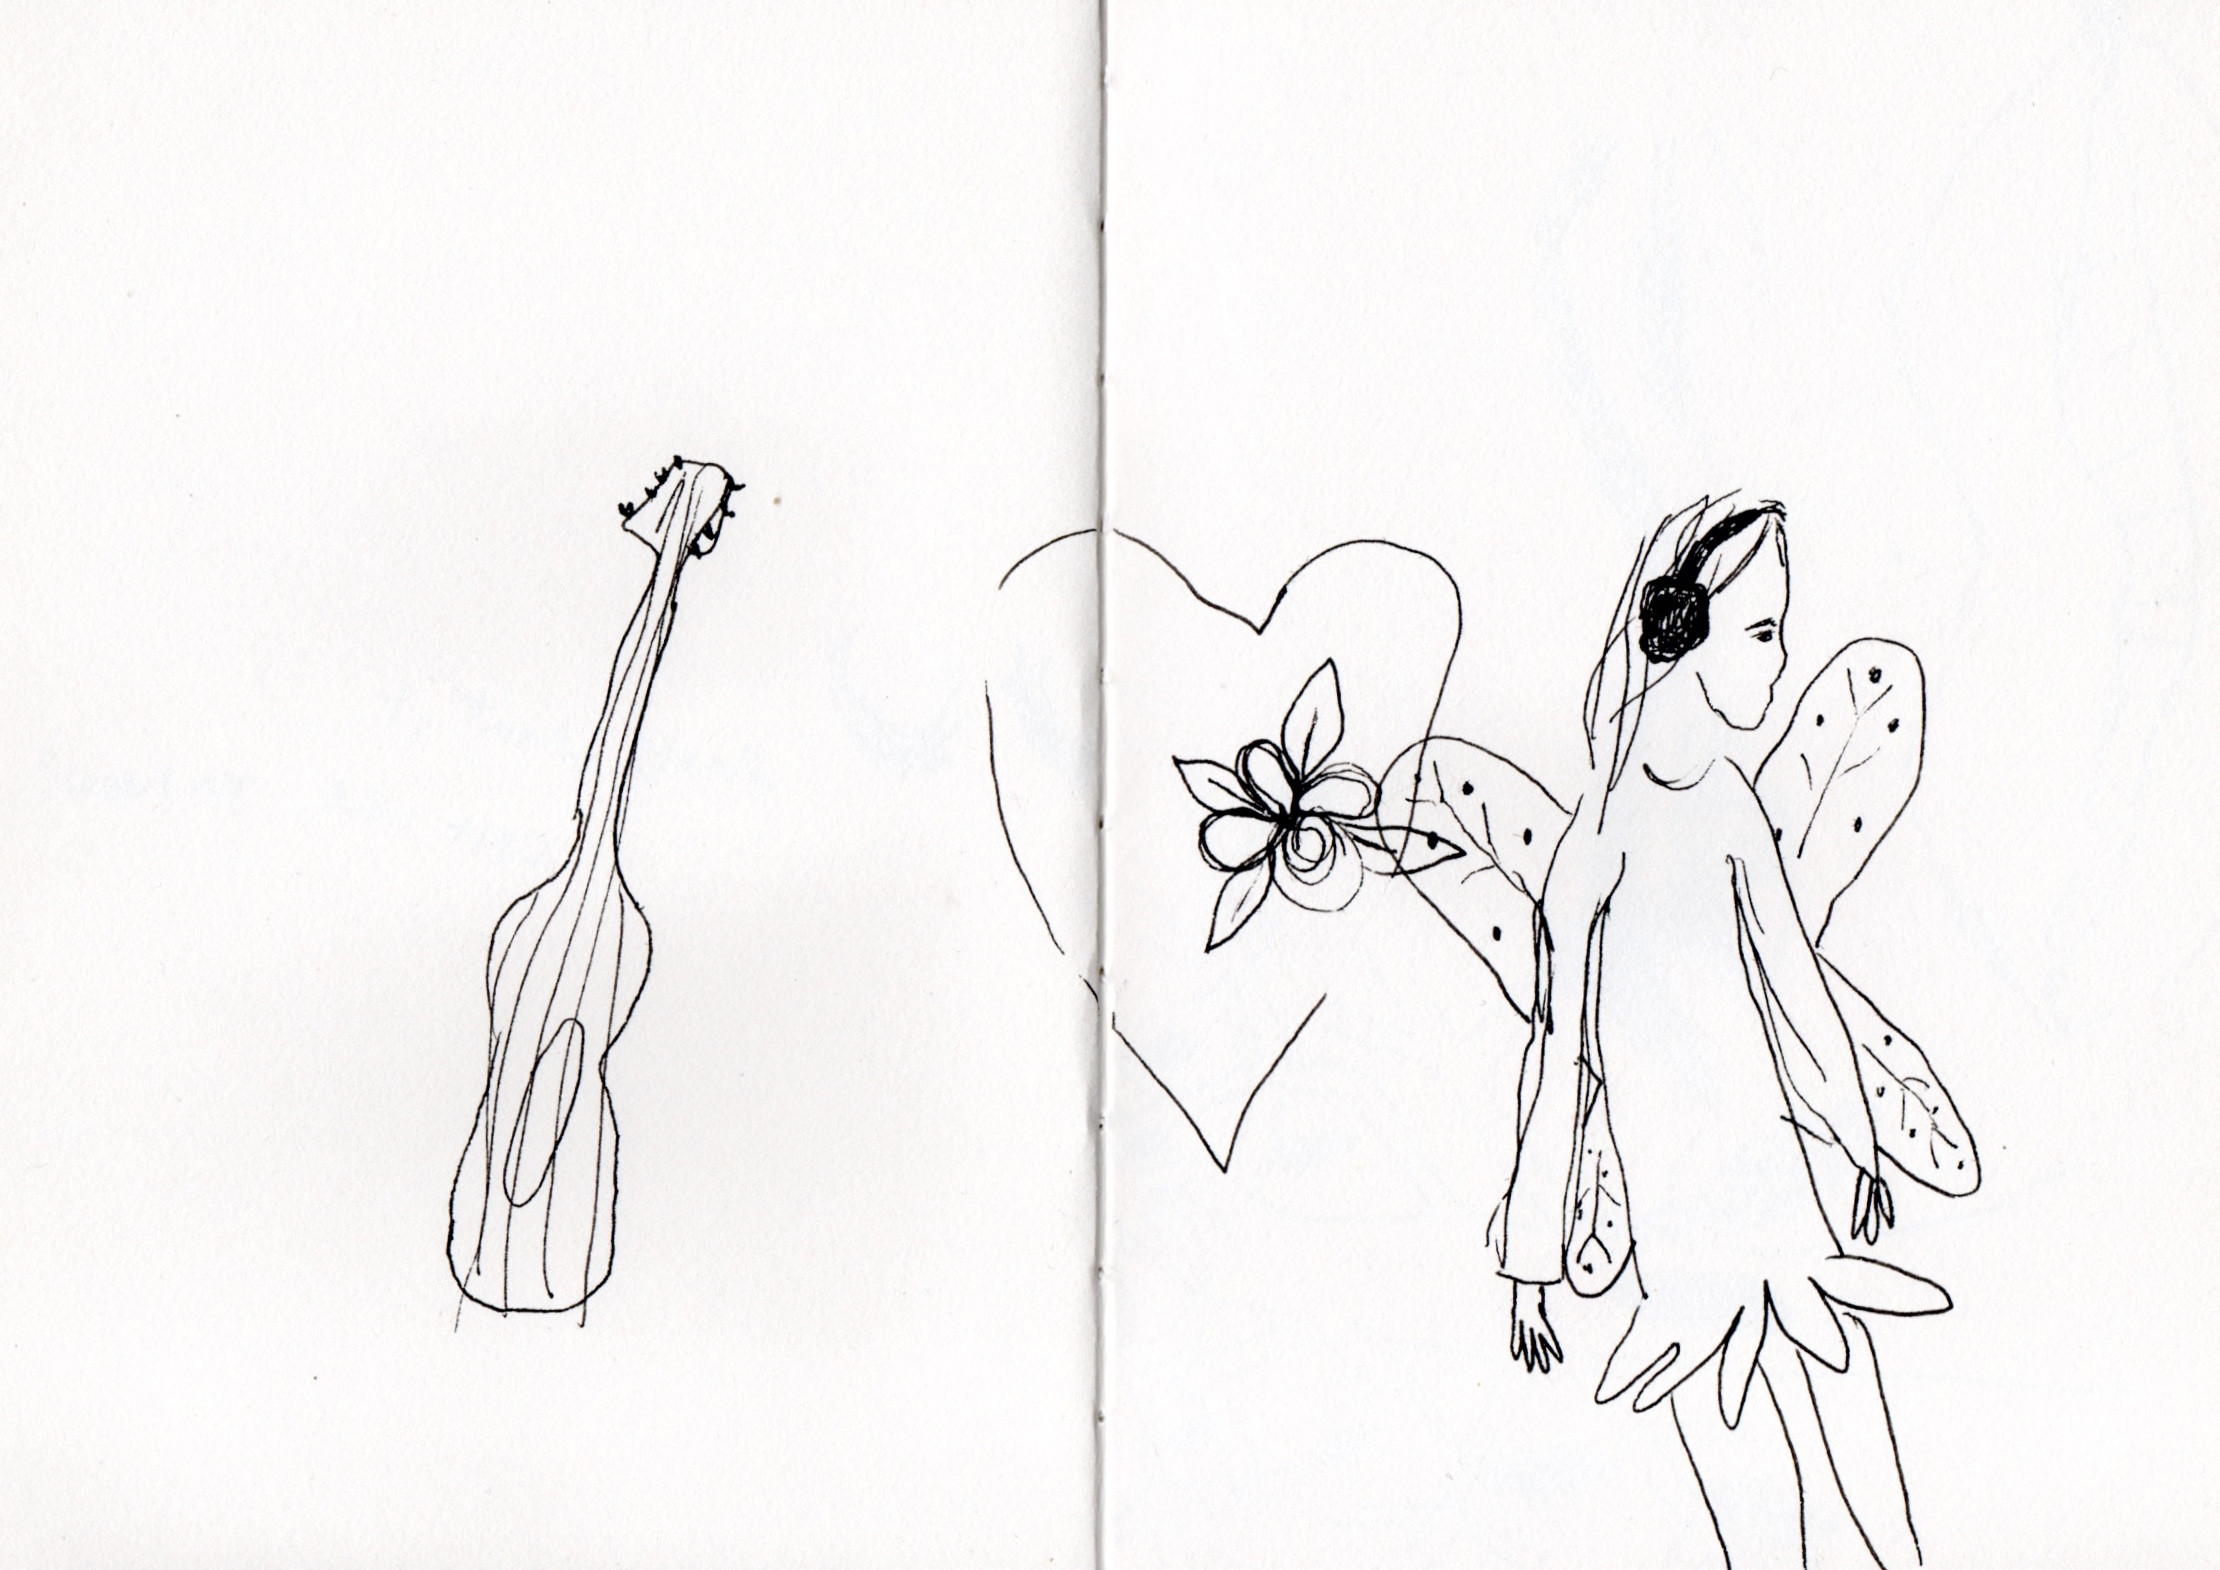 Guitar & Girl (musical tragedy)